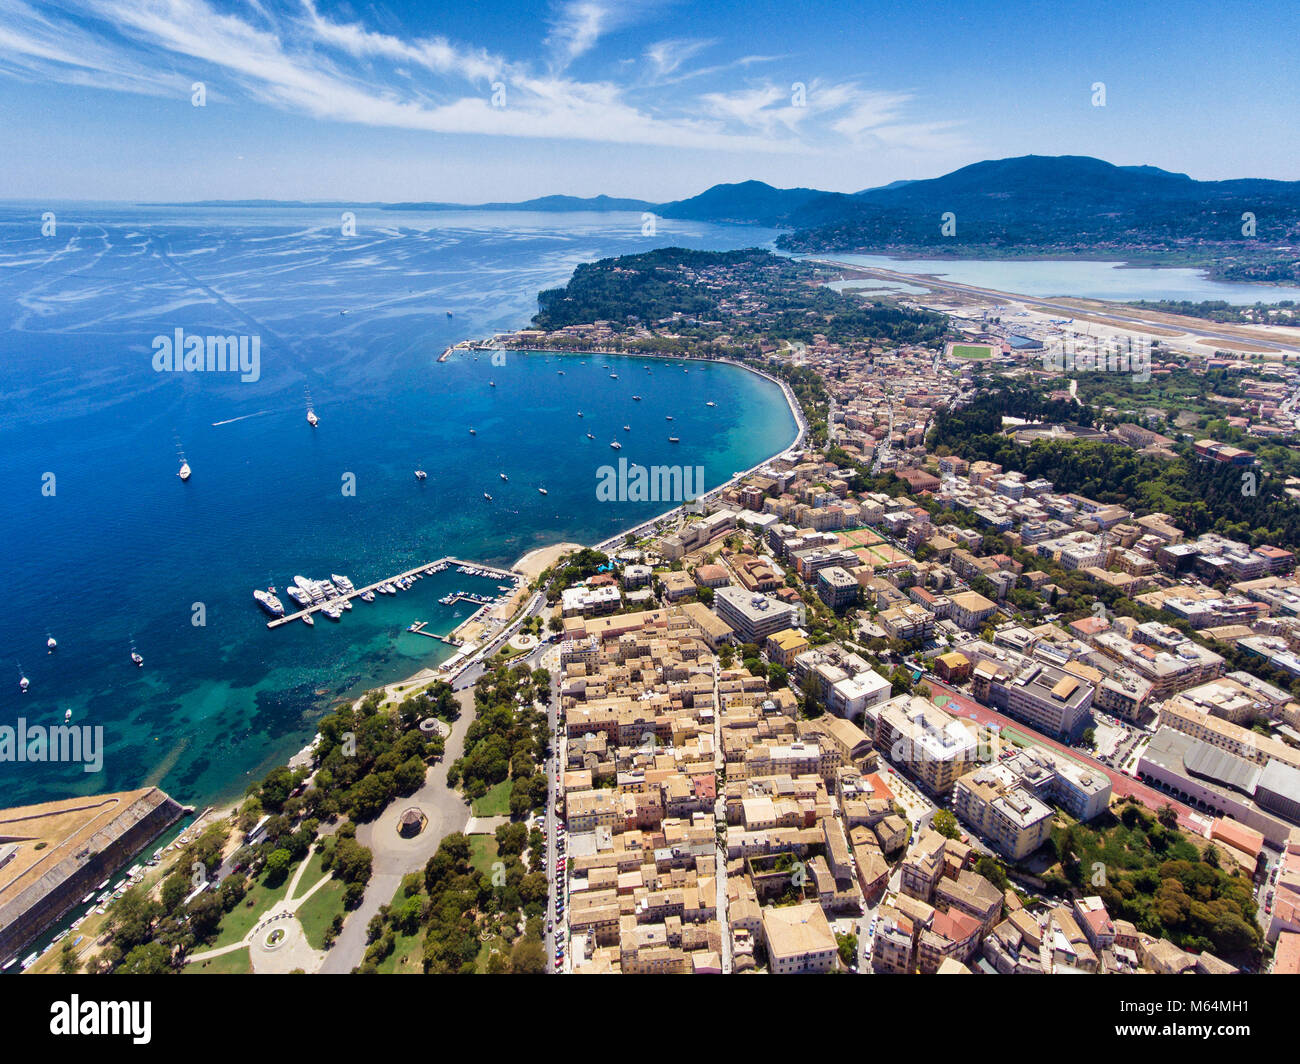 Corfu town from above. Old capital of the island Kerkyra, Greece, Europe. Mediteraneean architecture. Stock Photo